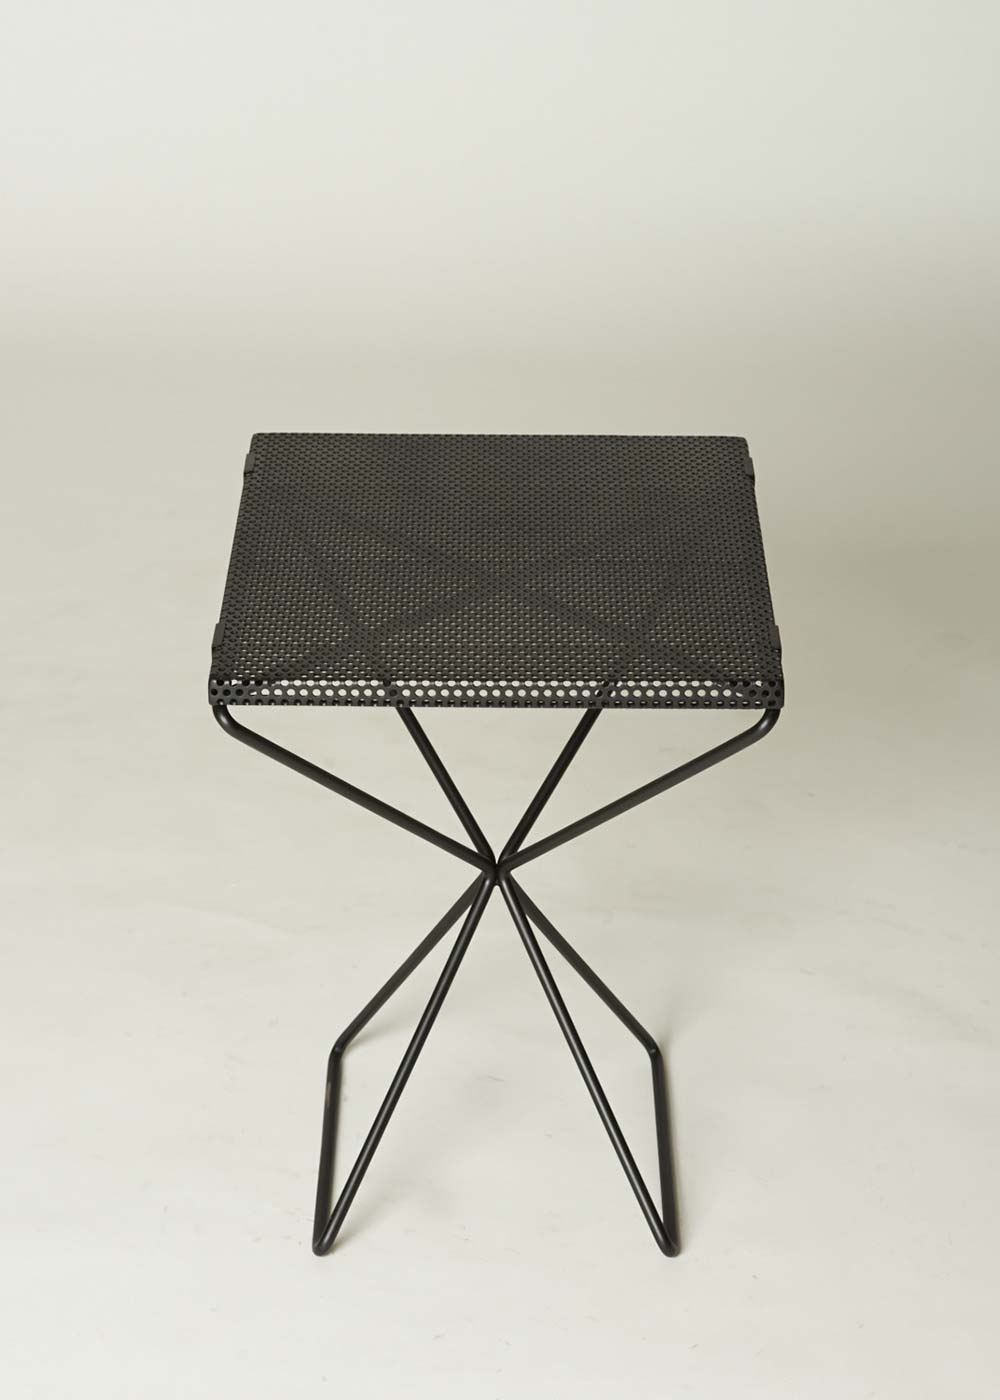 XX STEEL SIDE TABLE (Perforated)